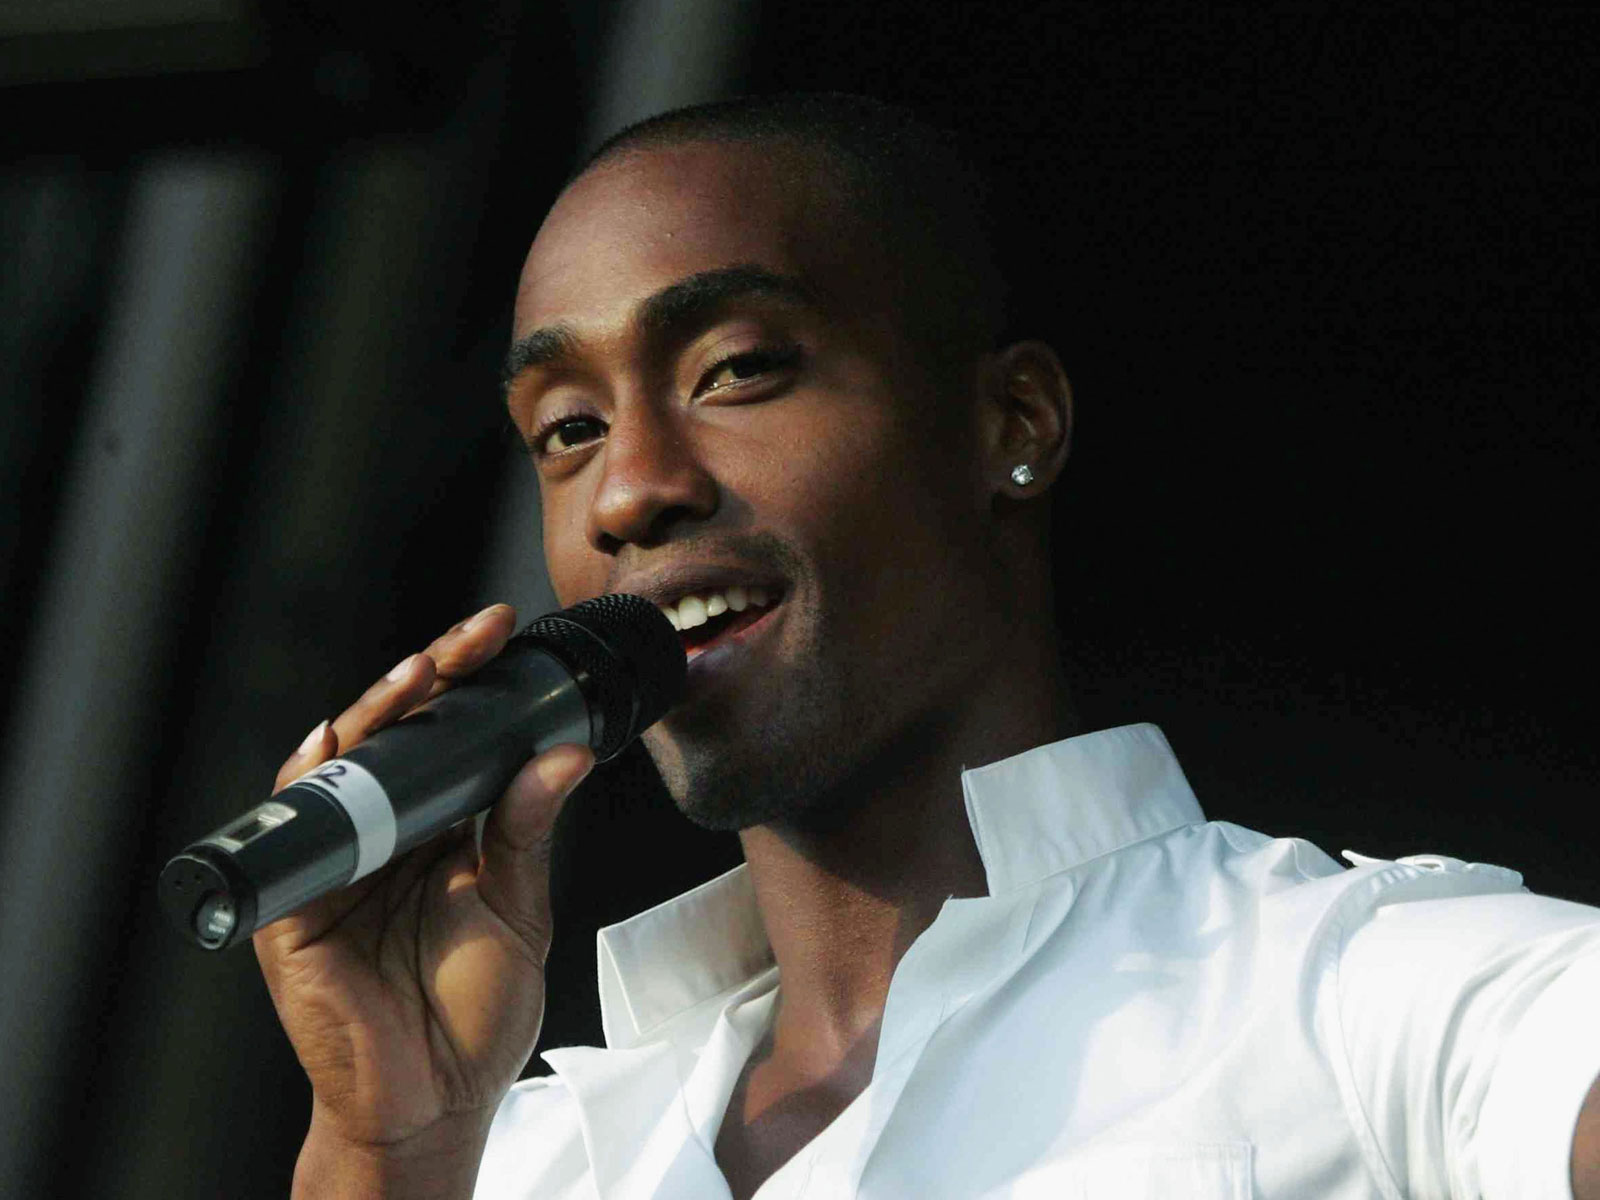 Let's move! Simon Webbe confirmed for Strictly Come Dancing